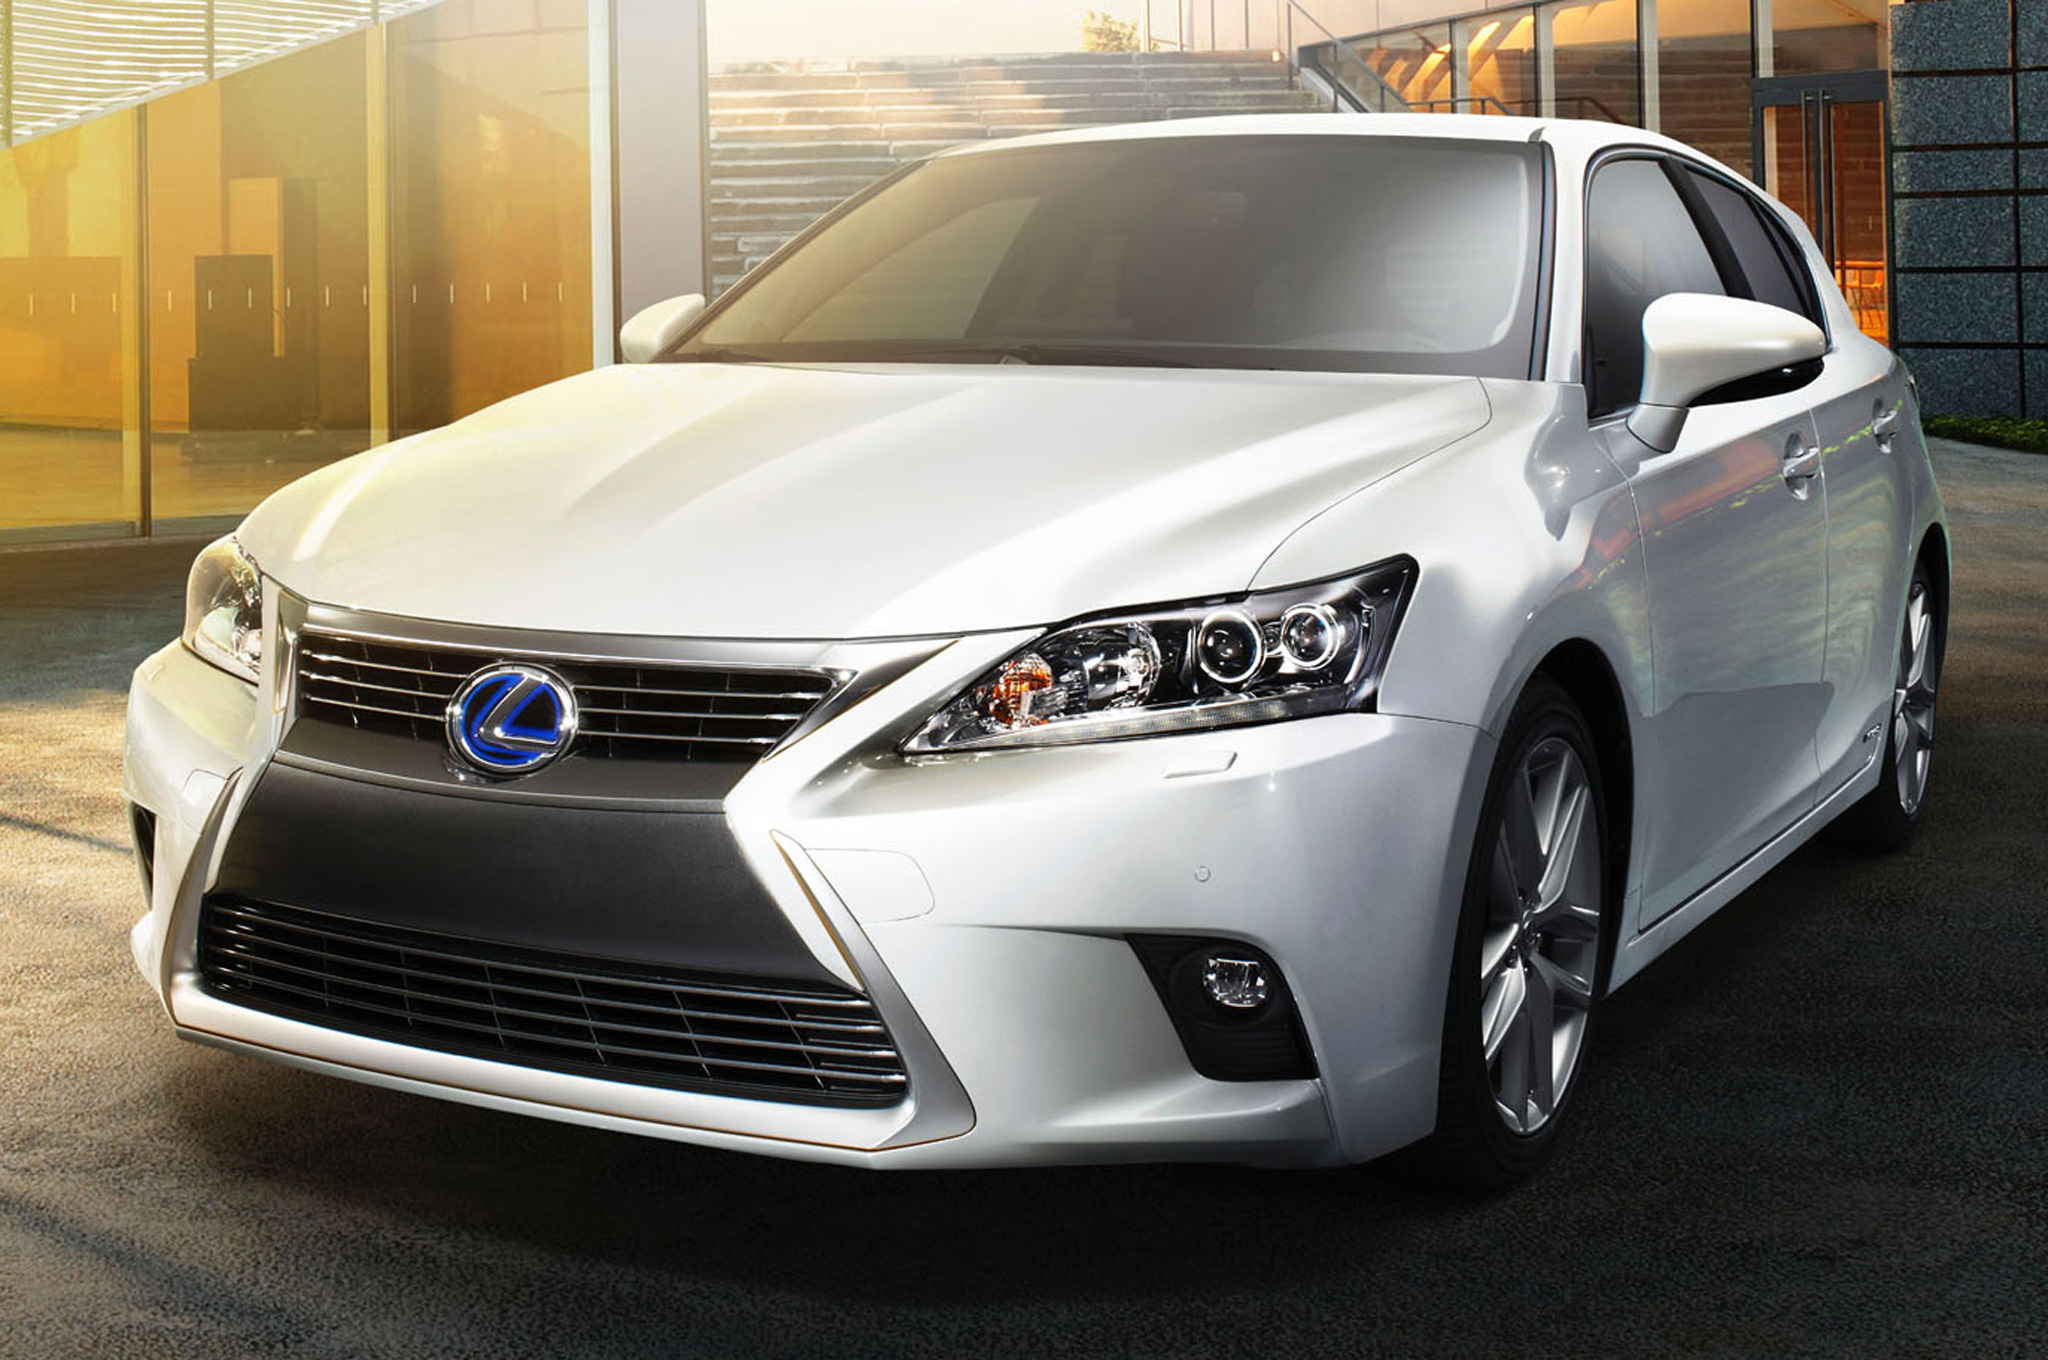 https://enthusiastnetwork.s3.amazonaws.com/uploads/sites/5/2013/11/2014-Lexus-CT-200h-front-view.jpg?impolicy=entryimage